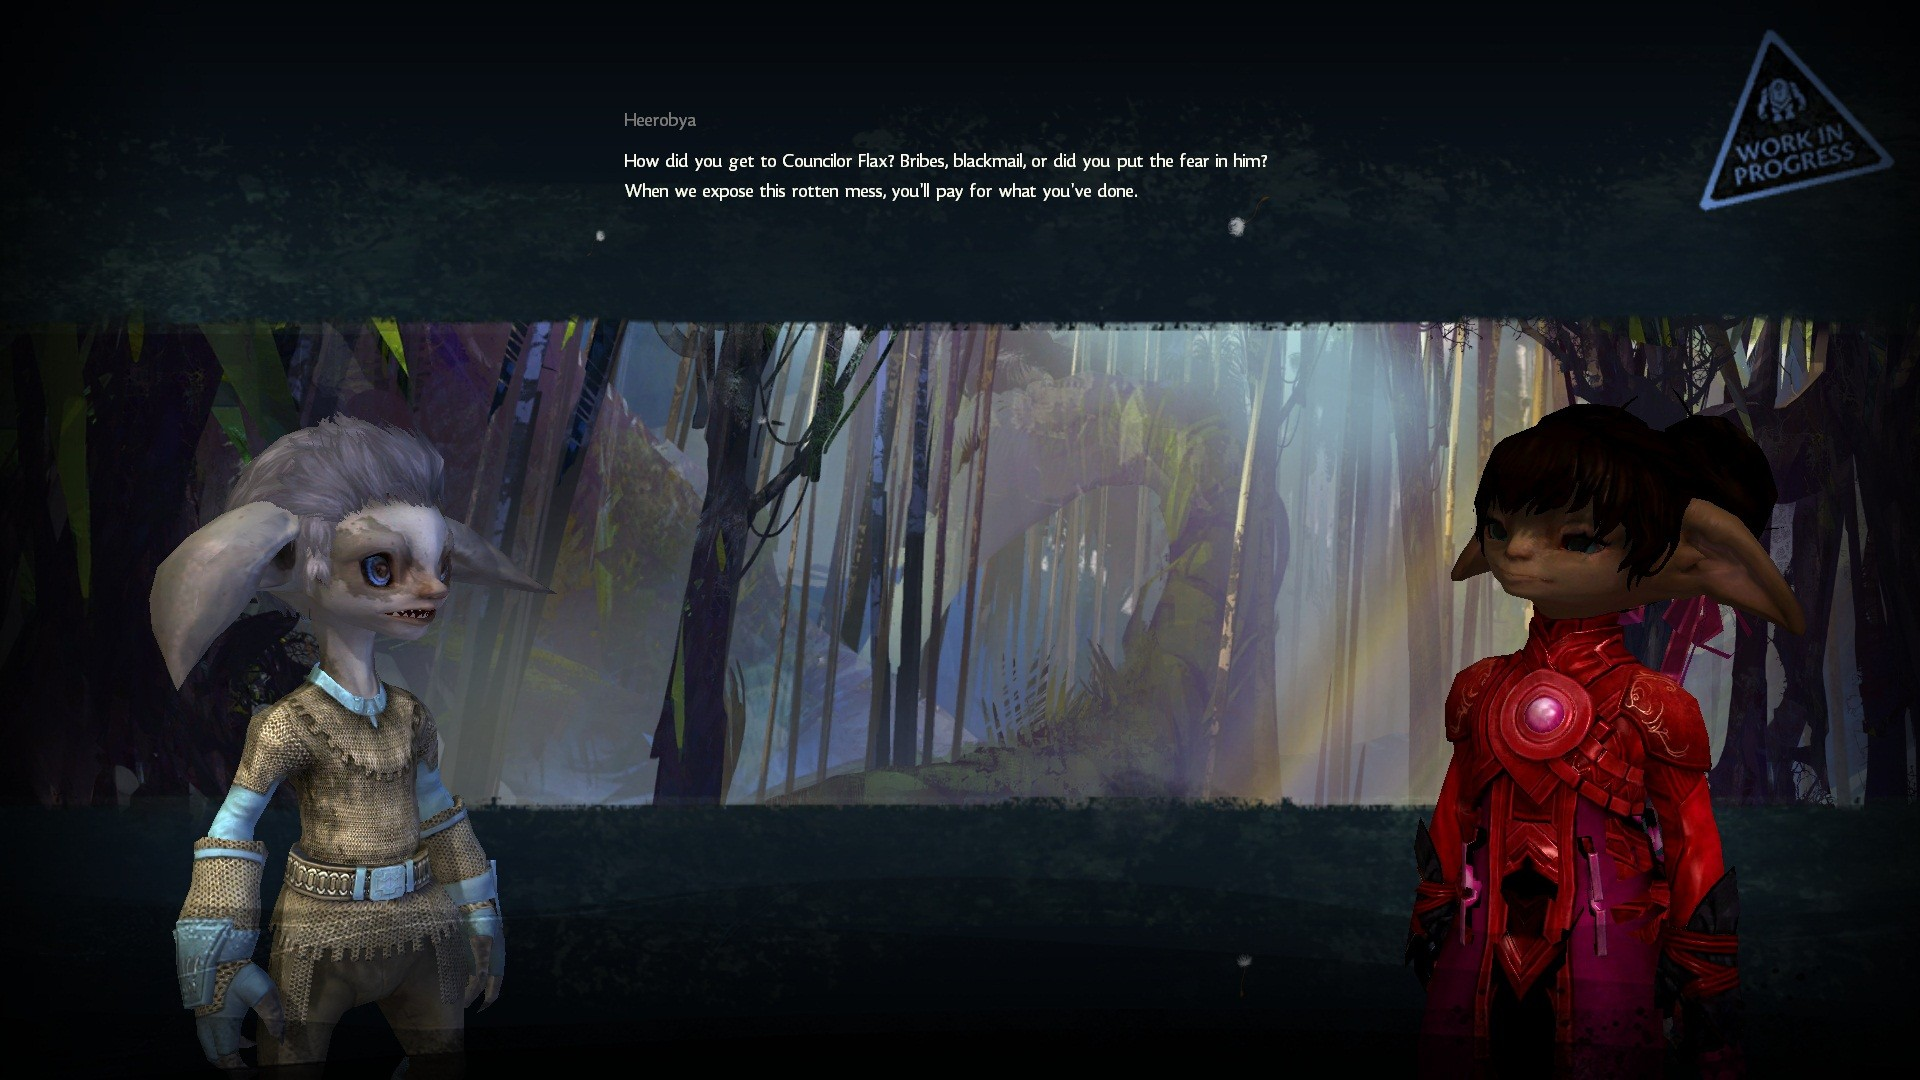 Guild Wars 2 - Some High-Res cutscene action.